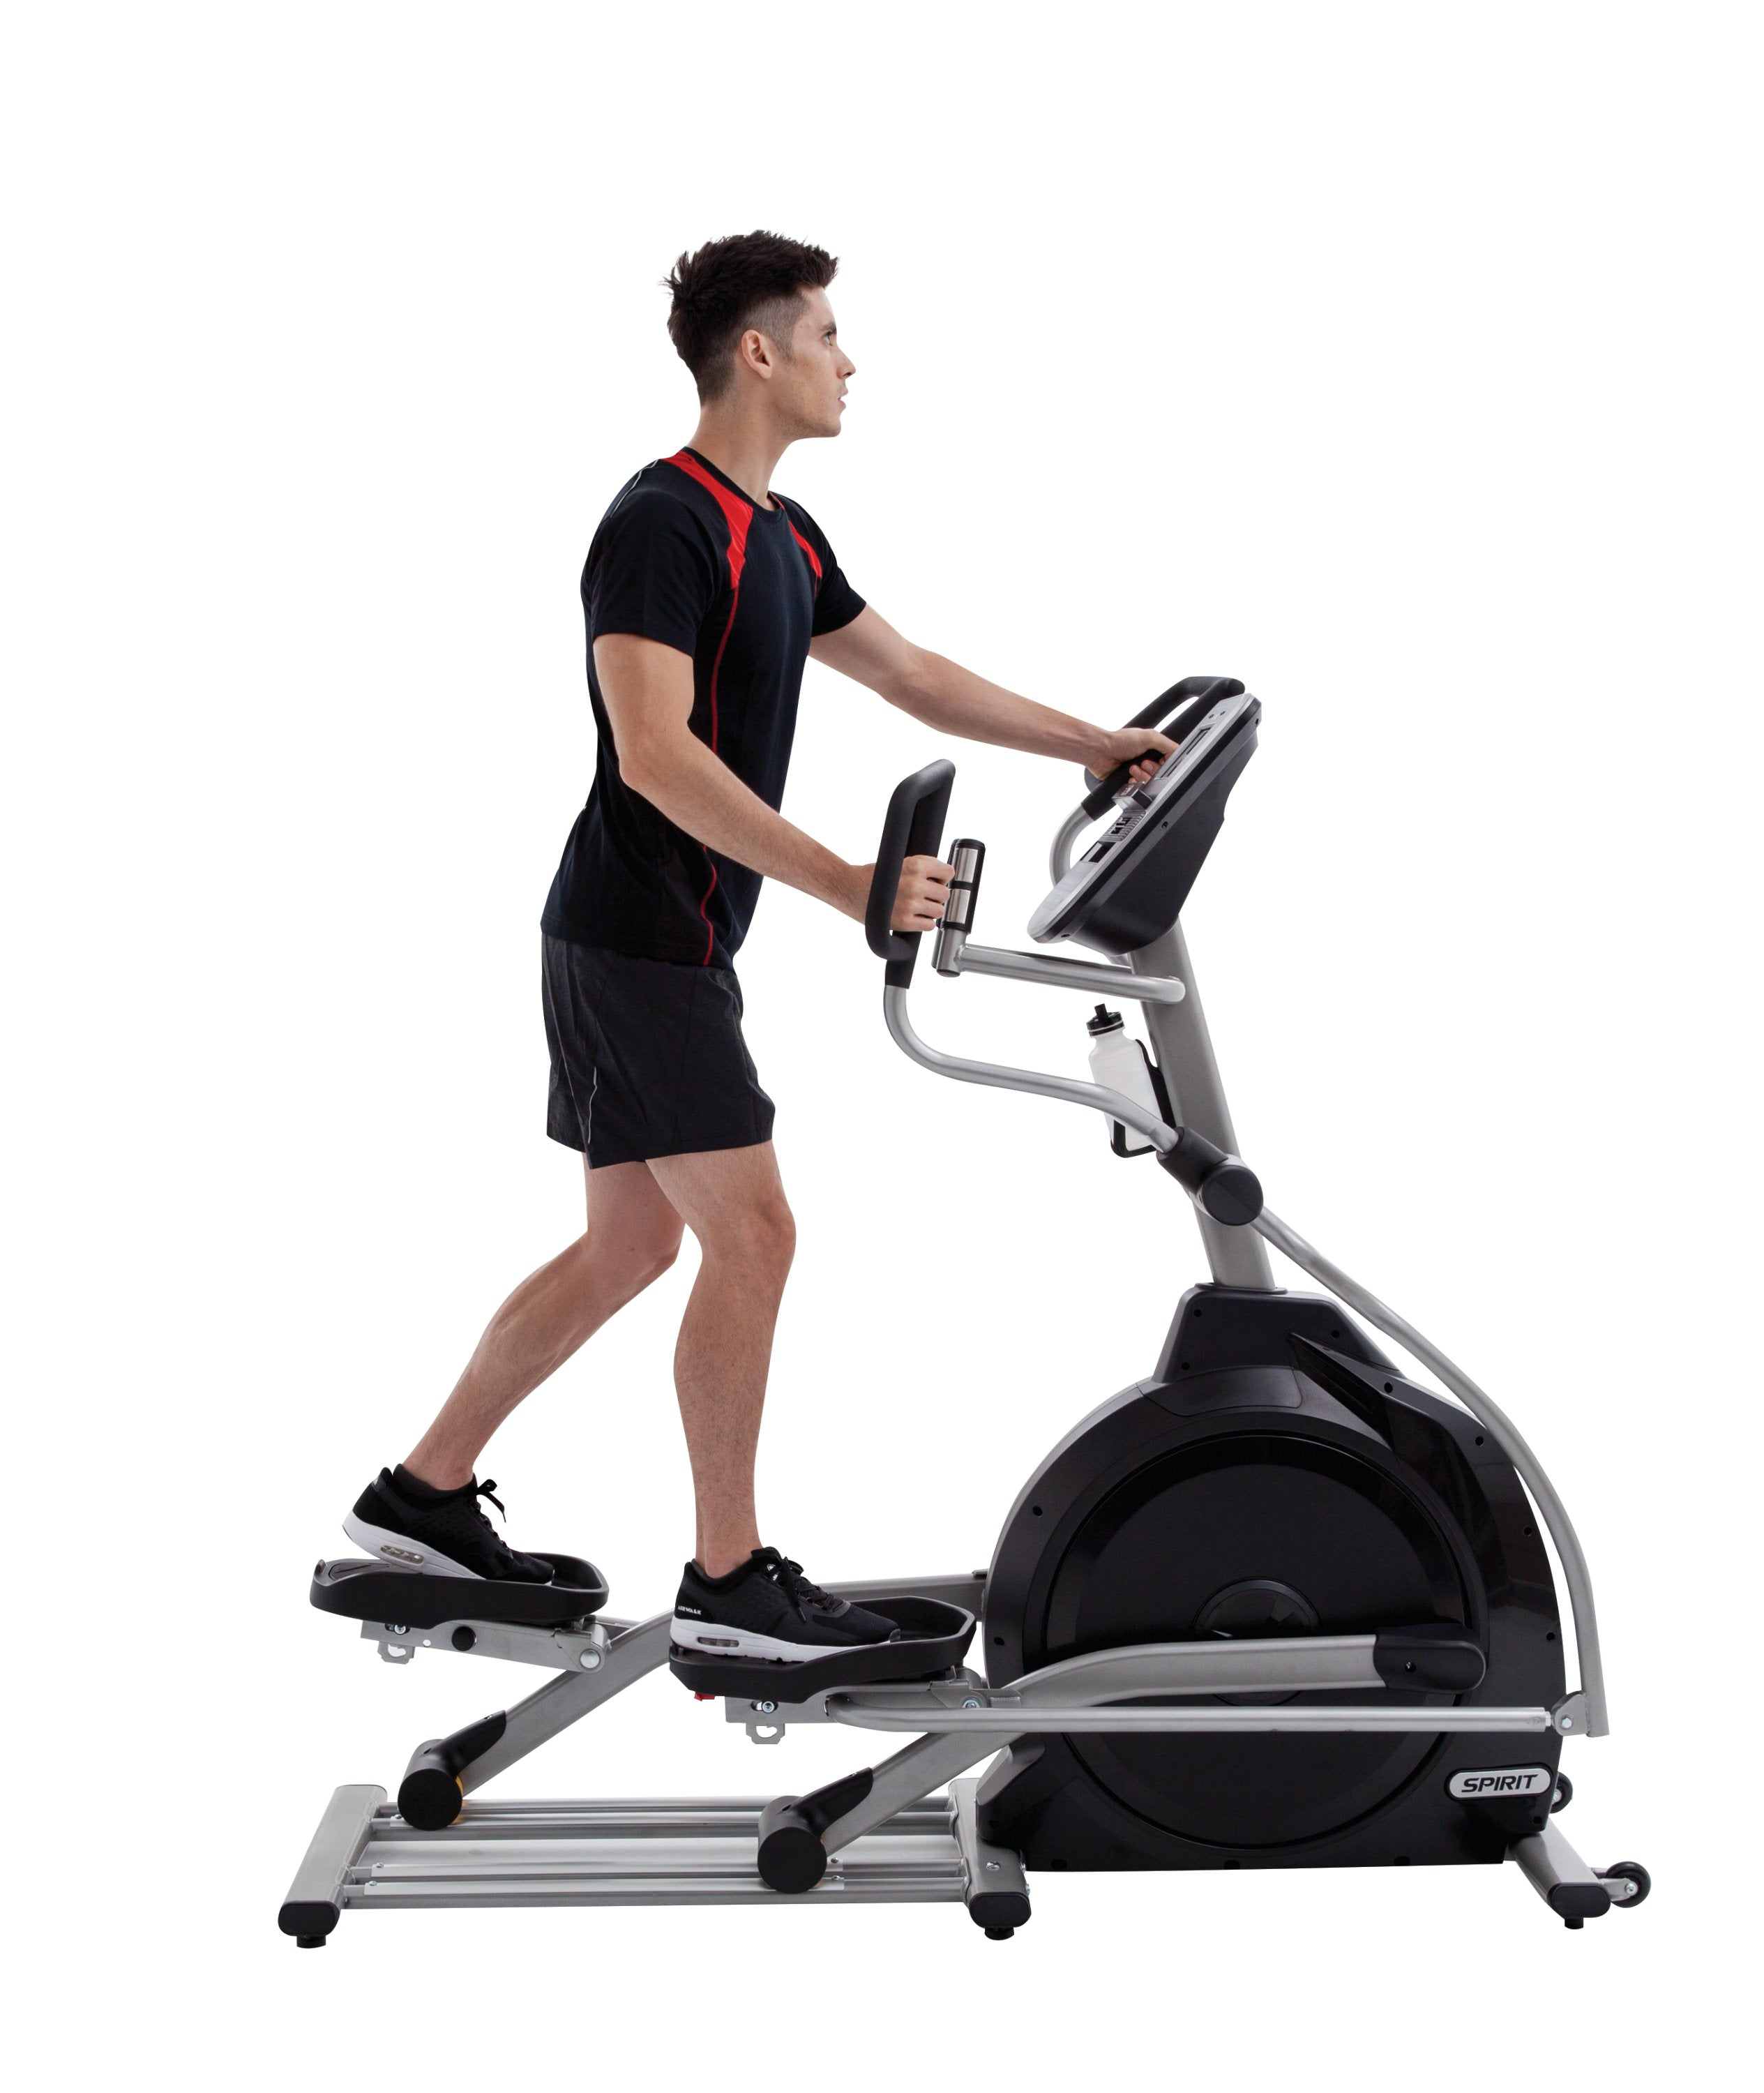 Spirit XE295 Elliptical Trainer